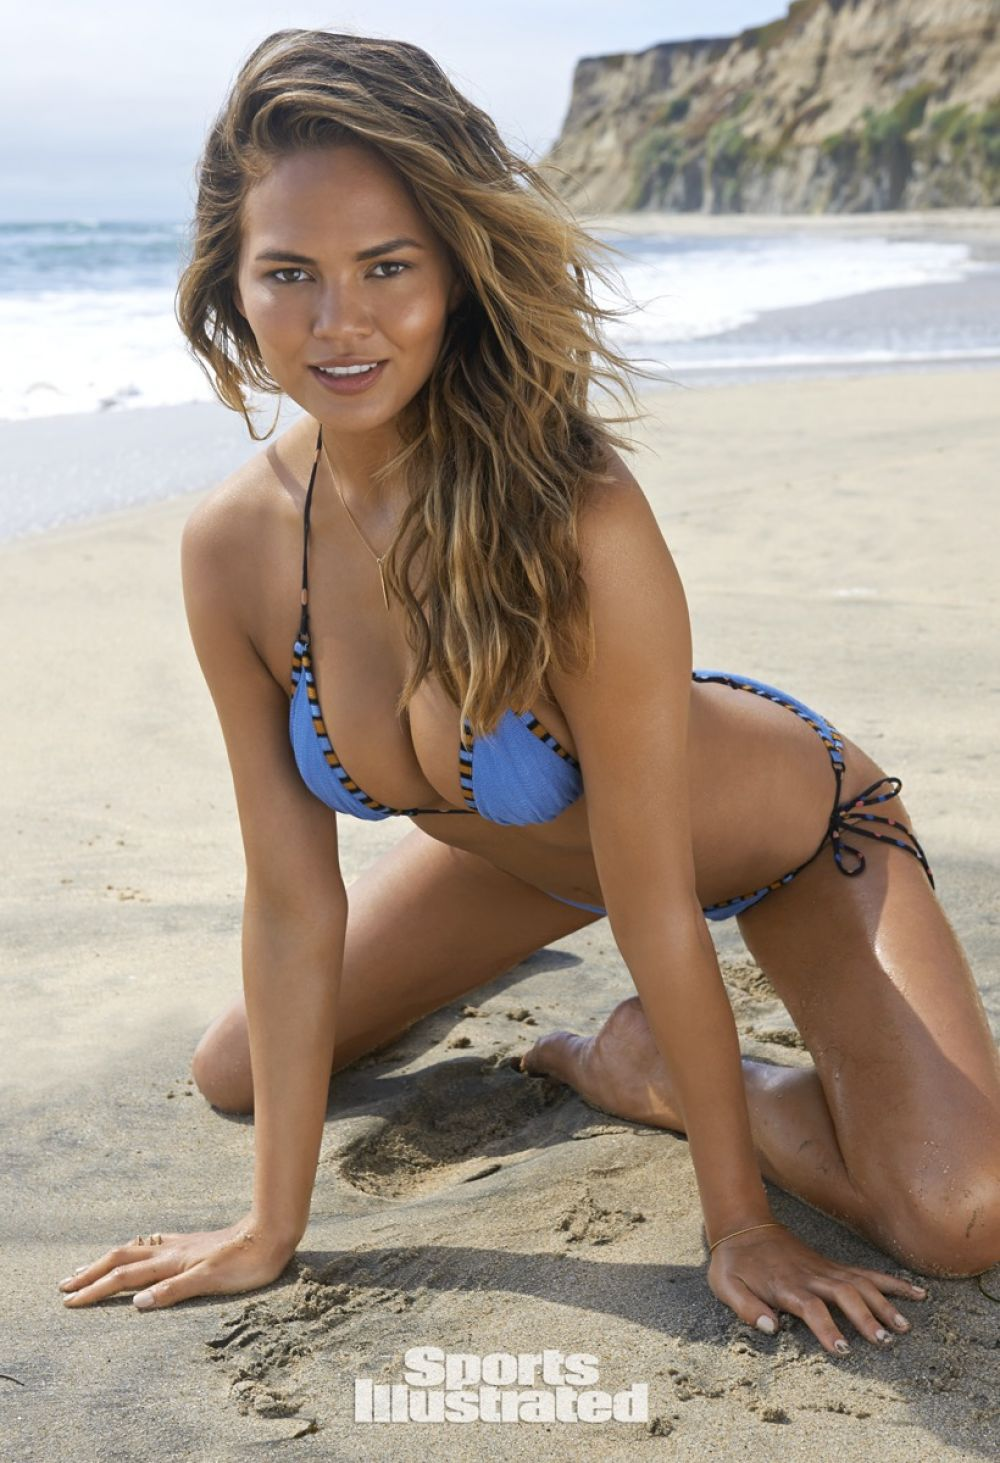 CHRISSY TEIGEN in Sports Illustrated Swimsuit 2015 Issue - HawtCelebs ...